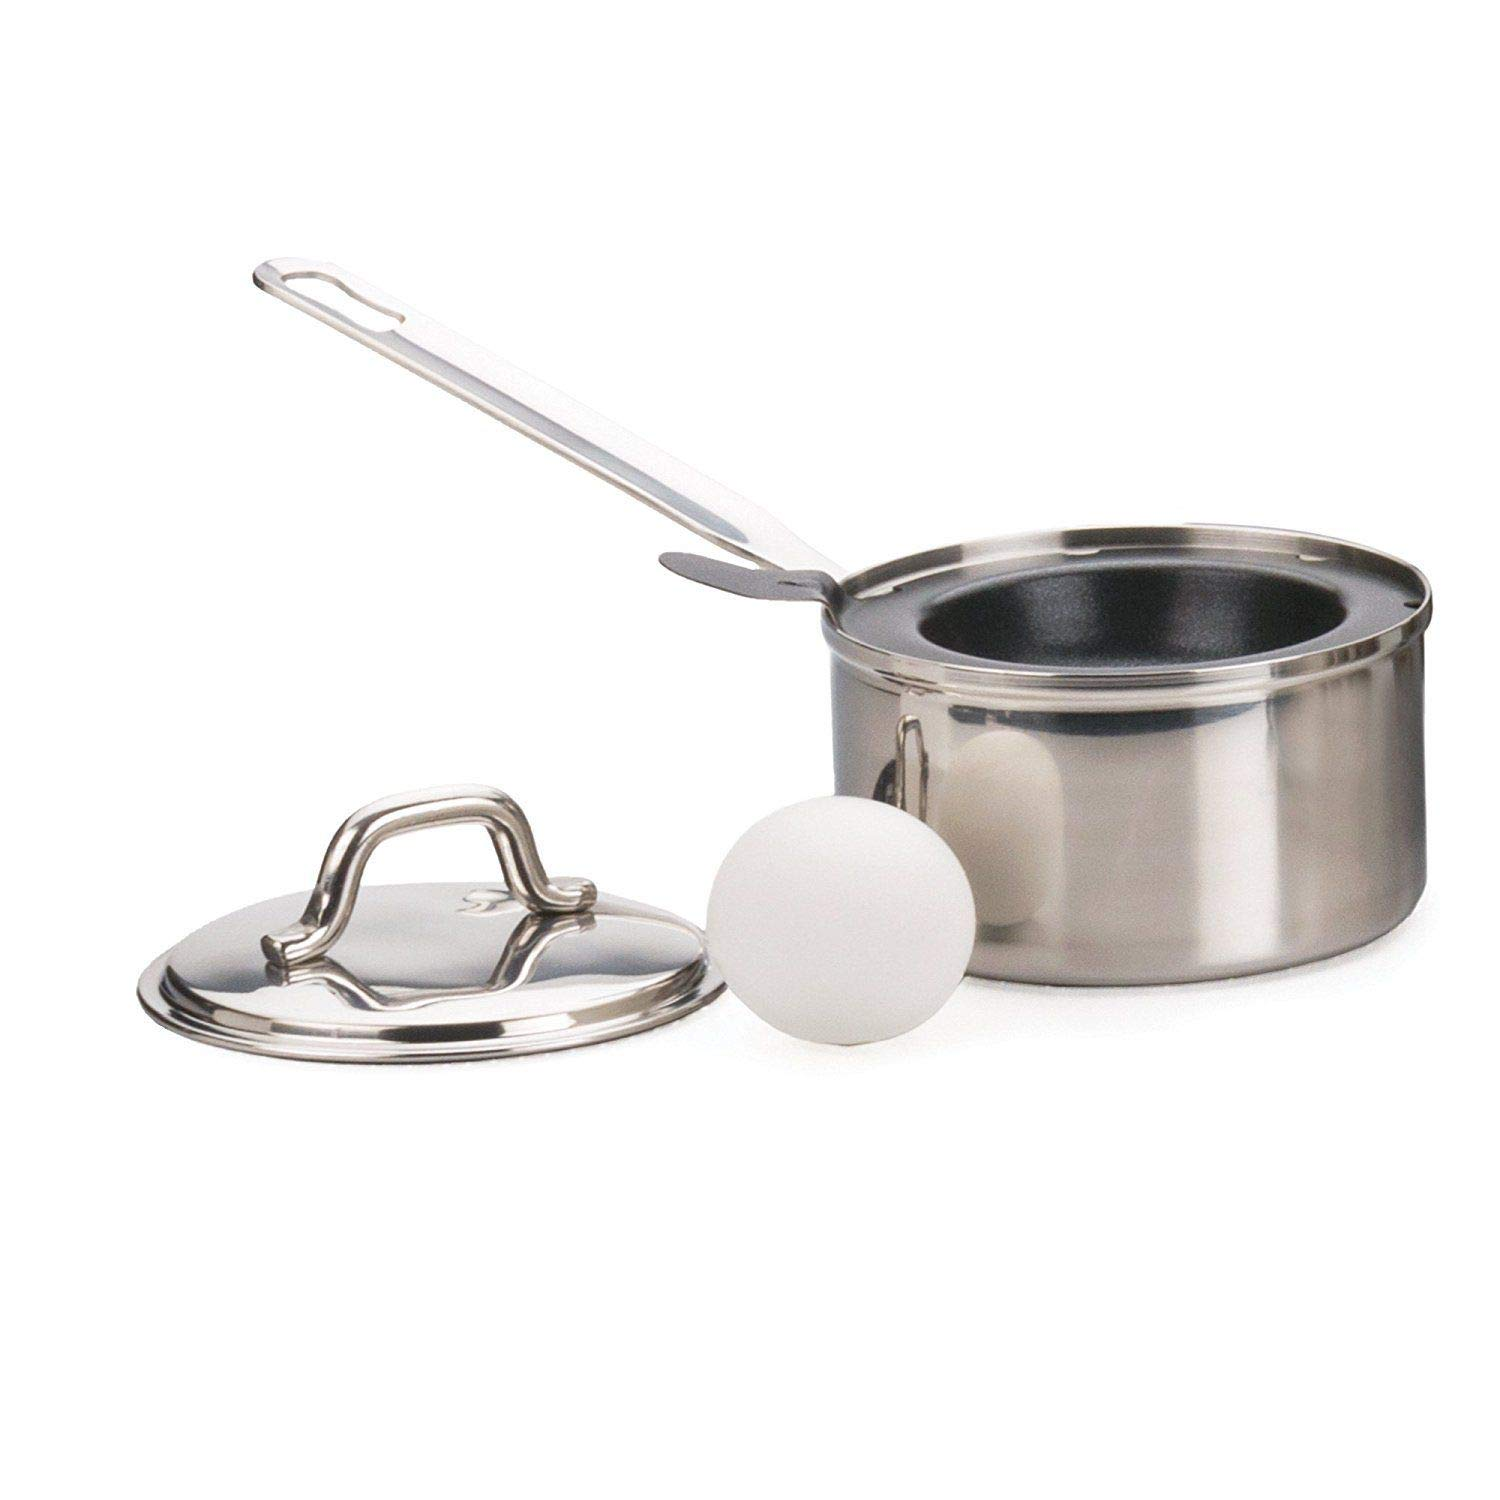 Akkapeary 1 EGG POACHER Stainless Steel W Lid Eggs Benedict Breakfast 9.57 inches Dishwasher safe Directions Recipes Included Non-stick Silver